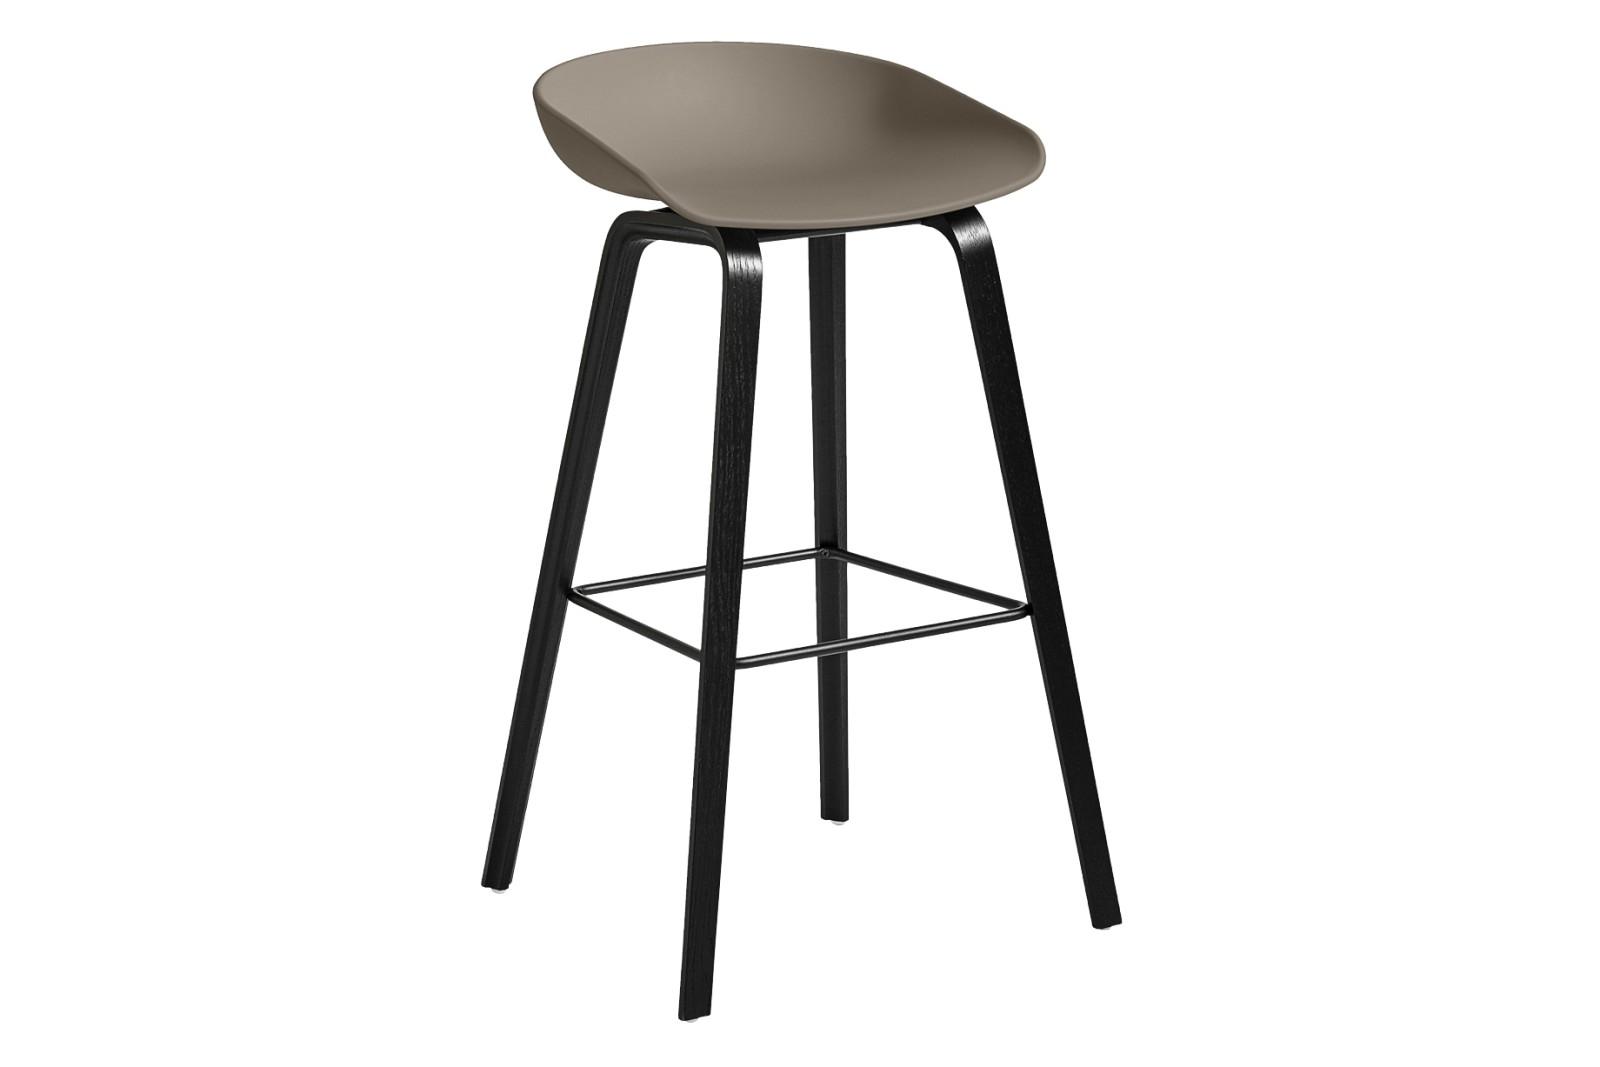 AAS 32 High Stool Plastic Khaki, Wood Black Oak, Metal Black